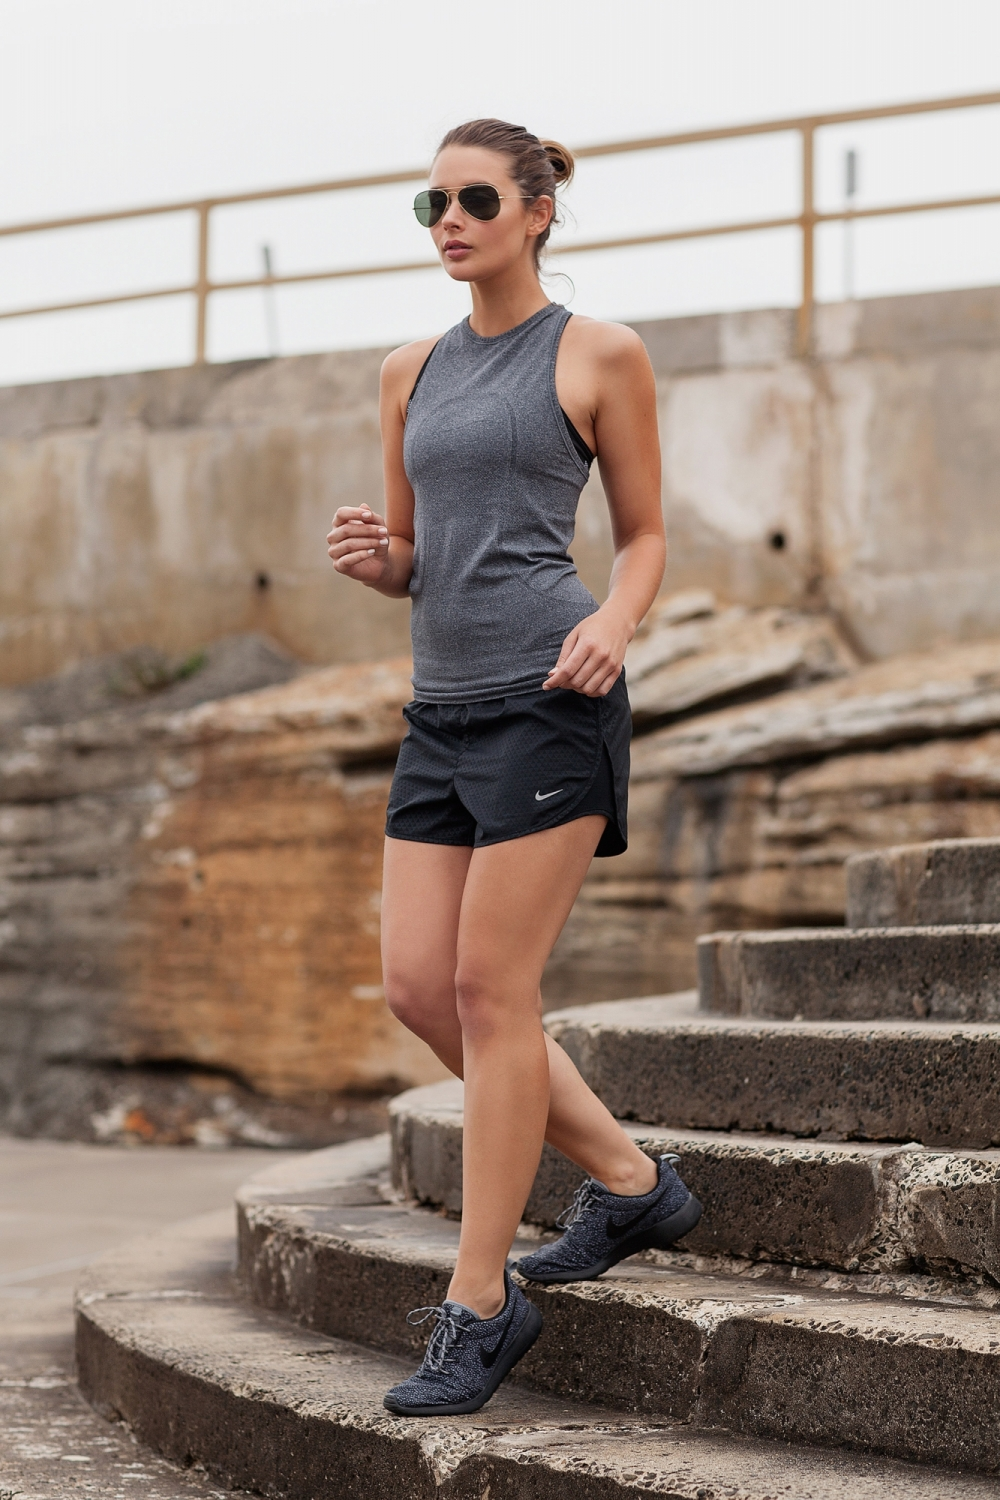 web-Harperandharley_activewear_gym_healthy_fashion-blogger_lululemon_nike_1